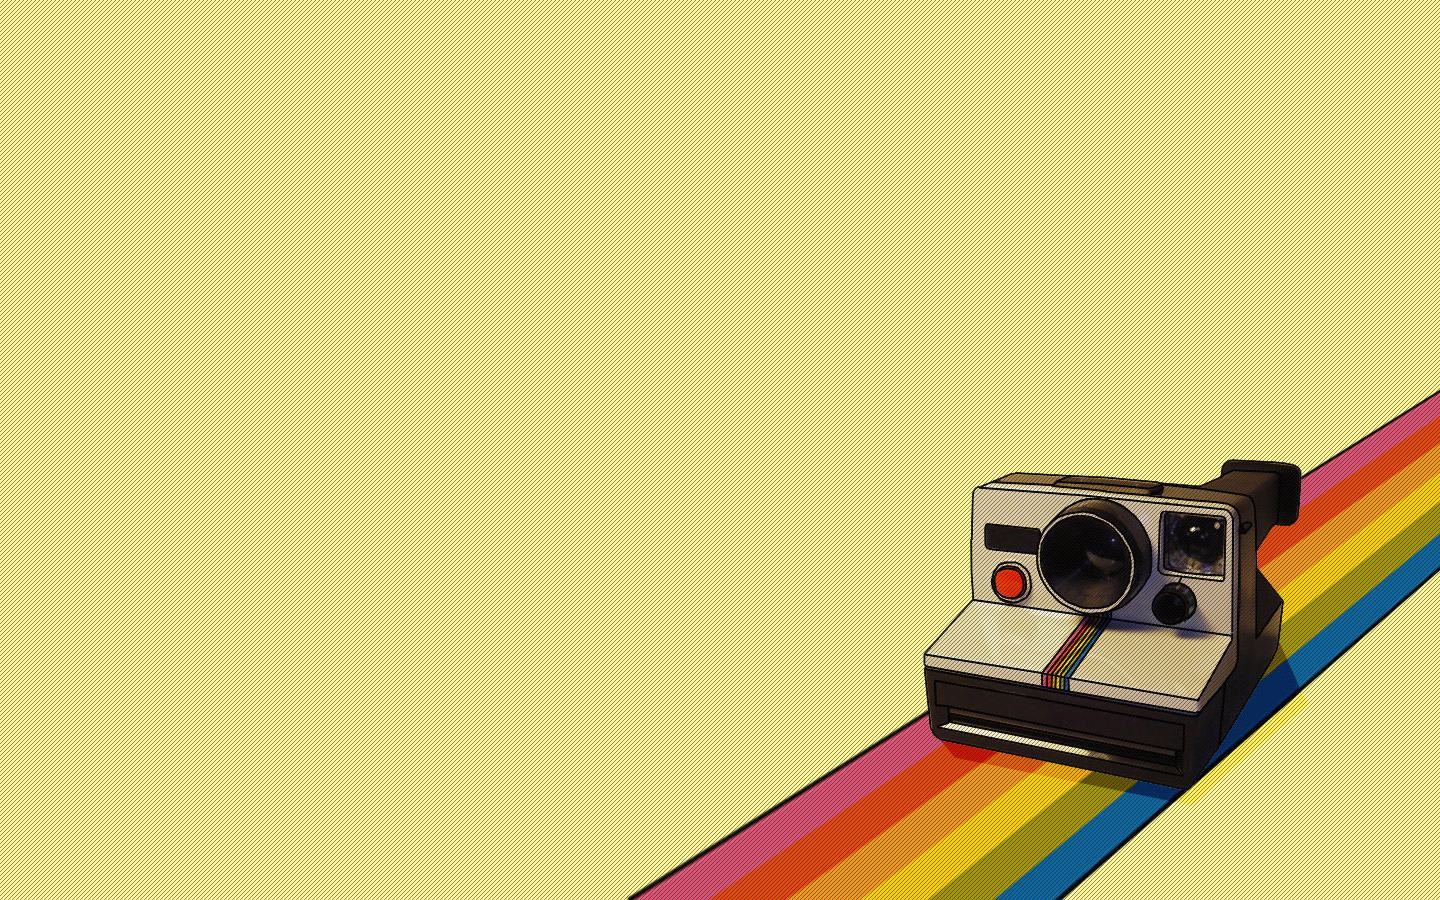 Camera Rainbow Instagram HD Wallpapers Backgrounds 1440 x 900 r 1440x900